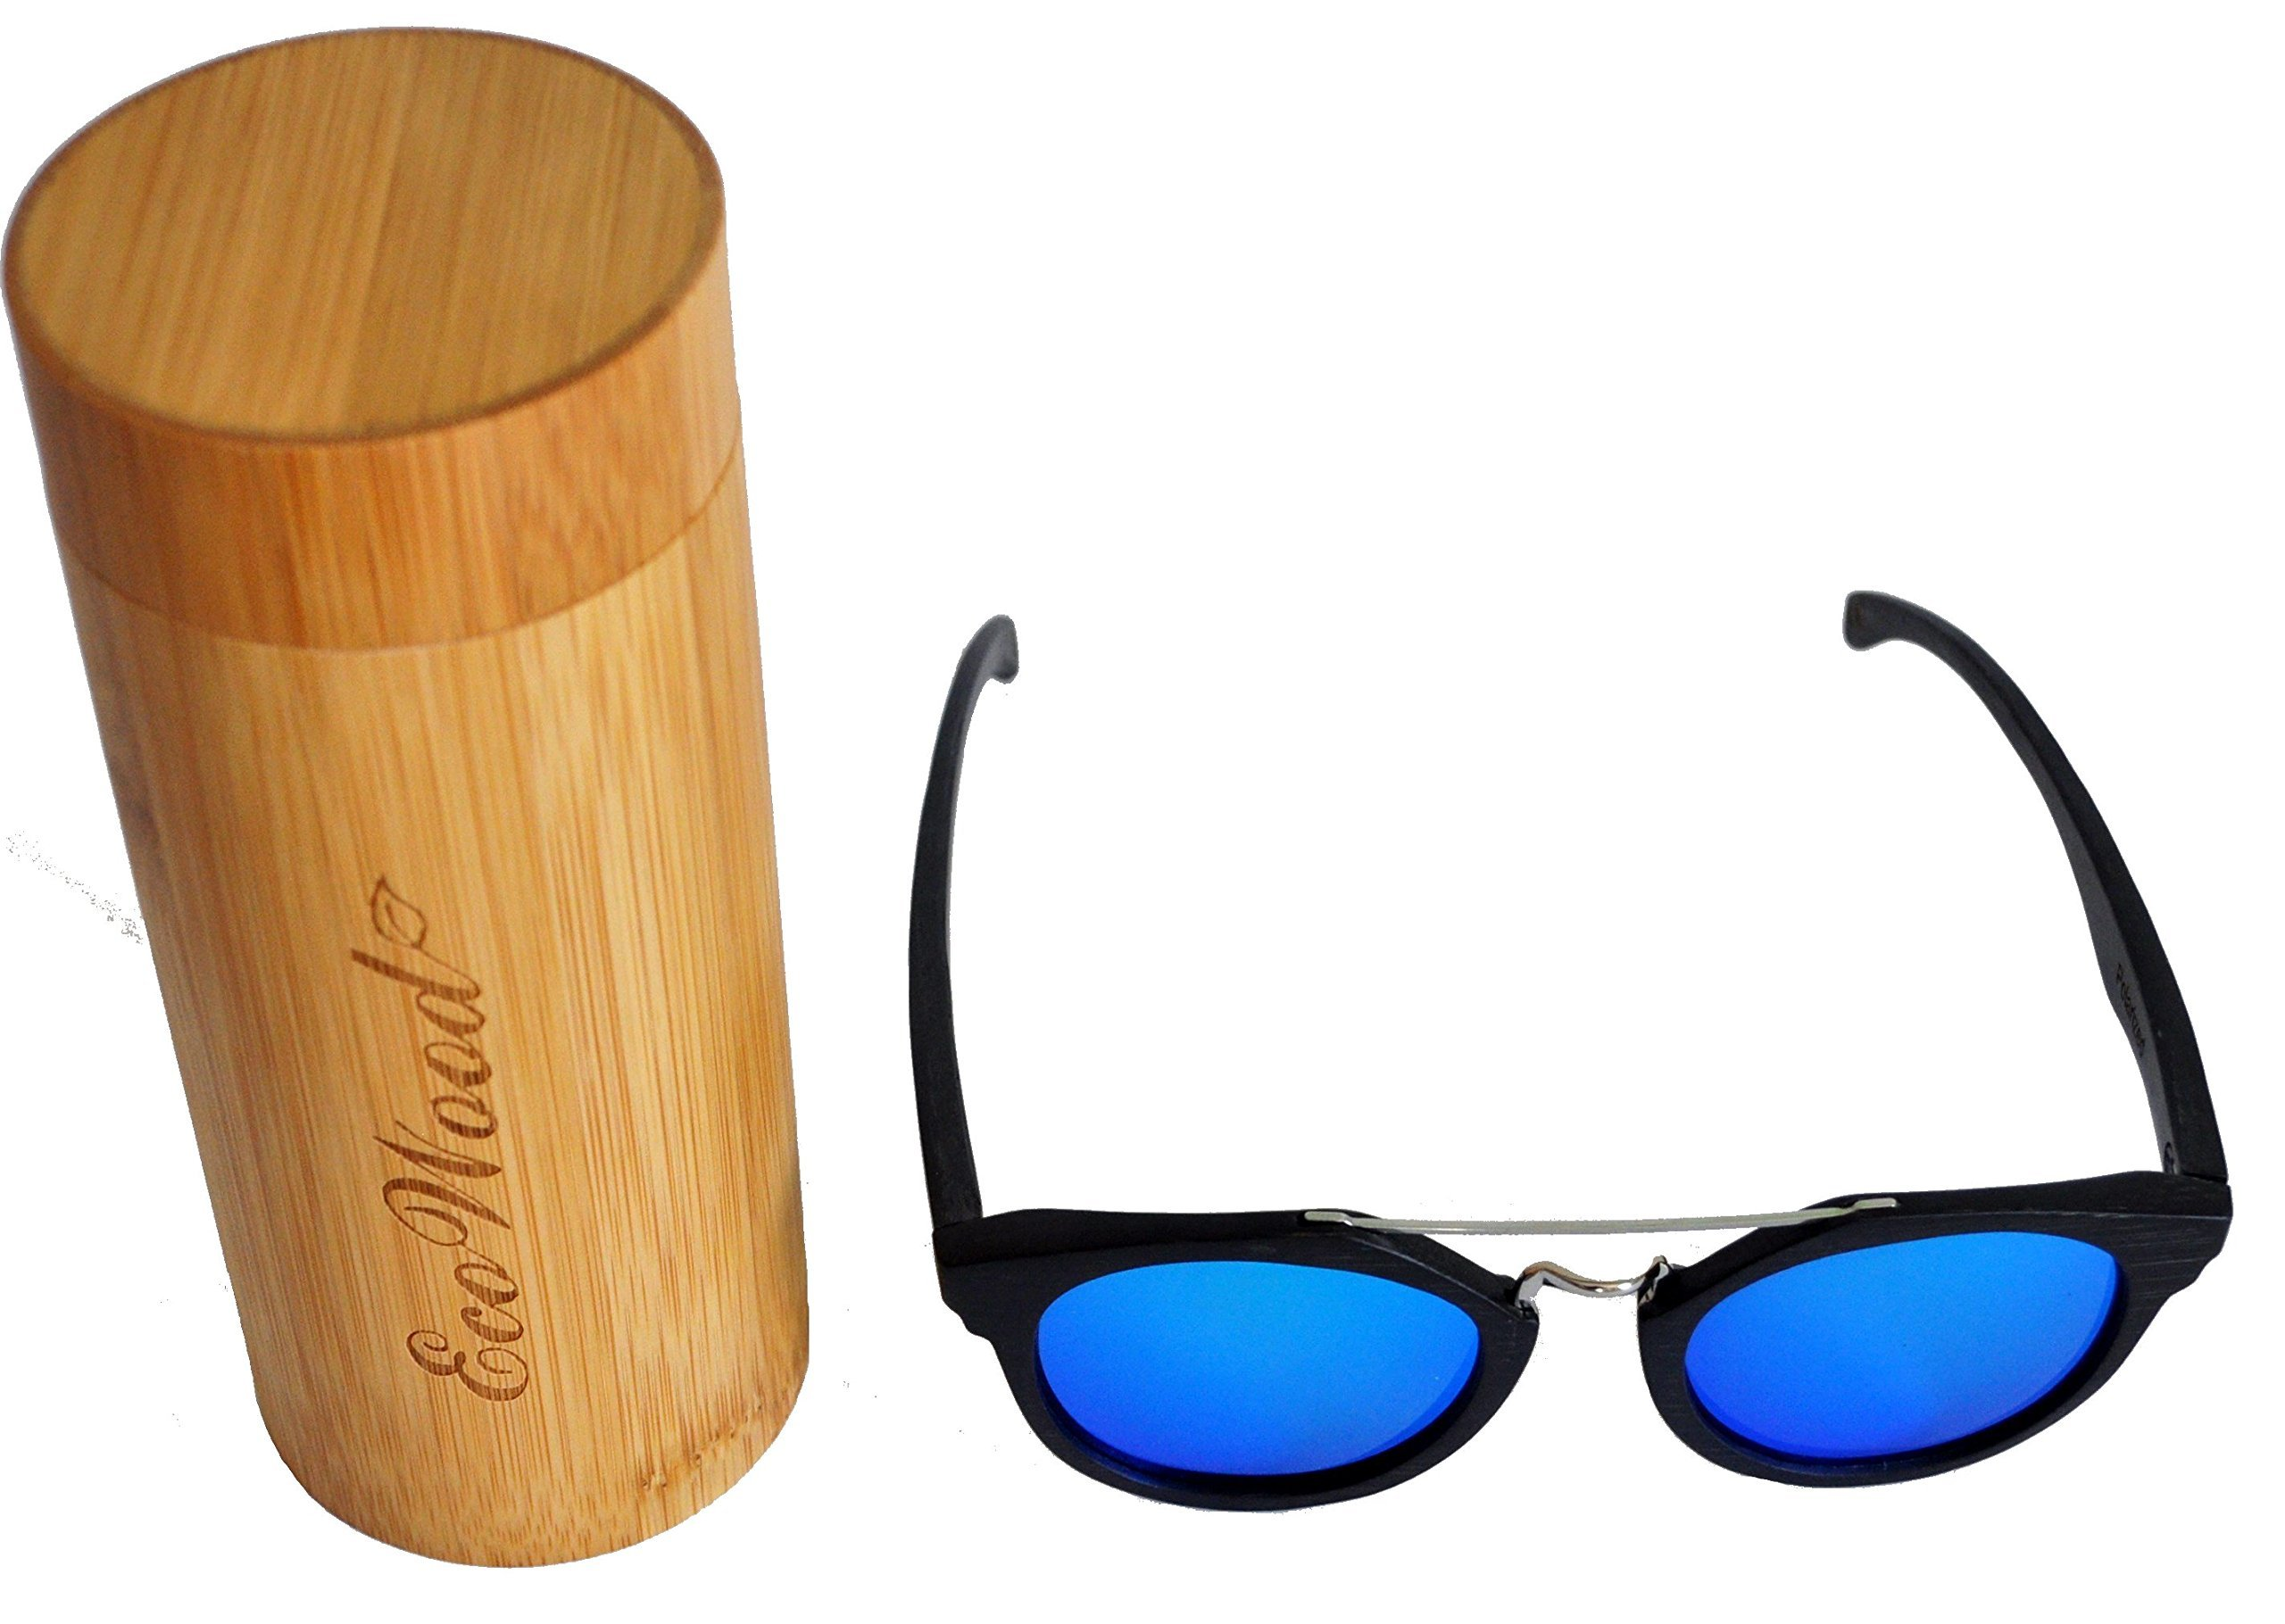 EcoWood Dior Homme Style Black Bamboo Wood Sunglasses with Ice Blue Polarized Lens with bamboo case